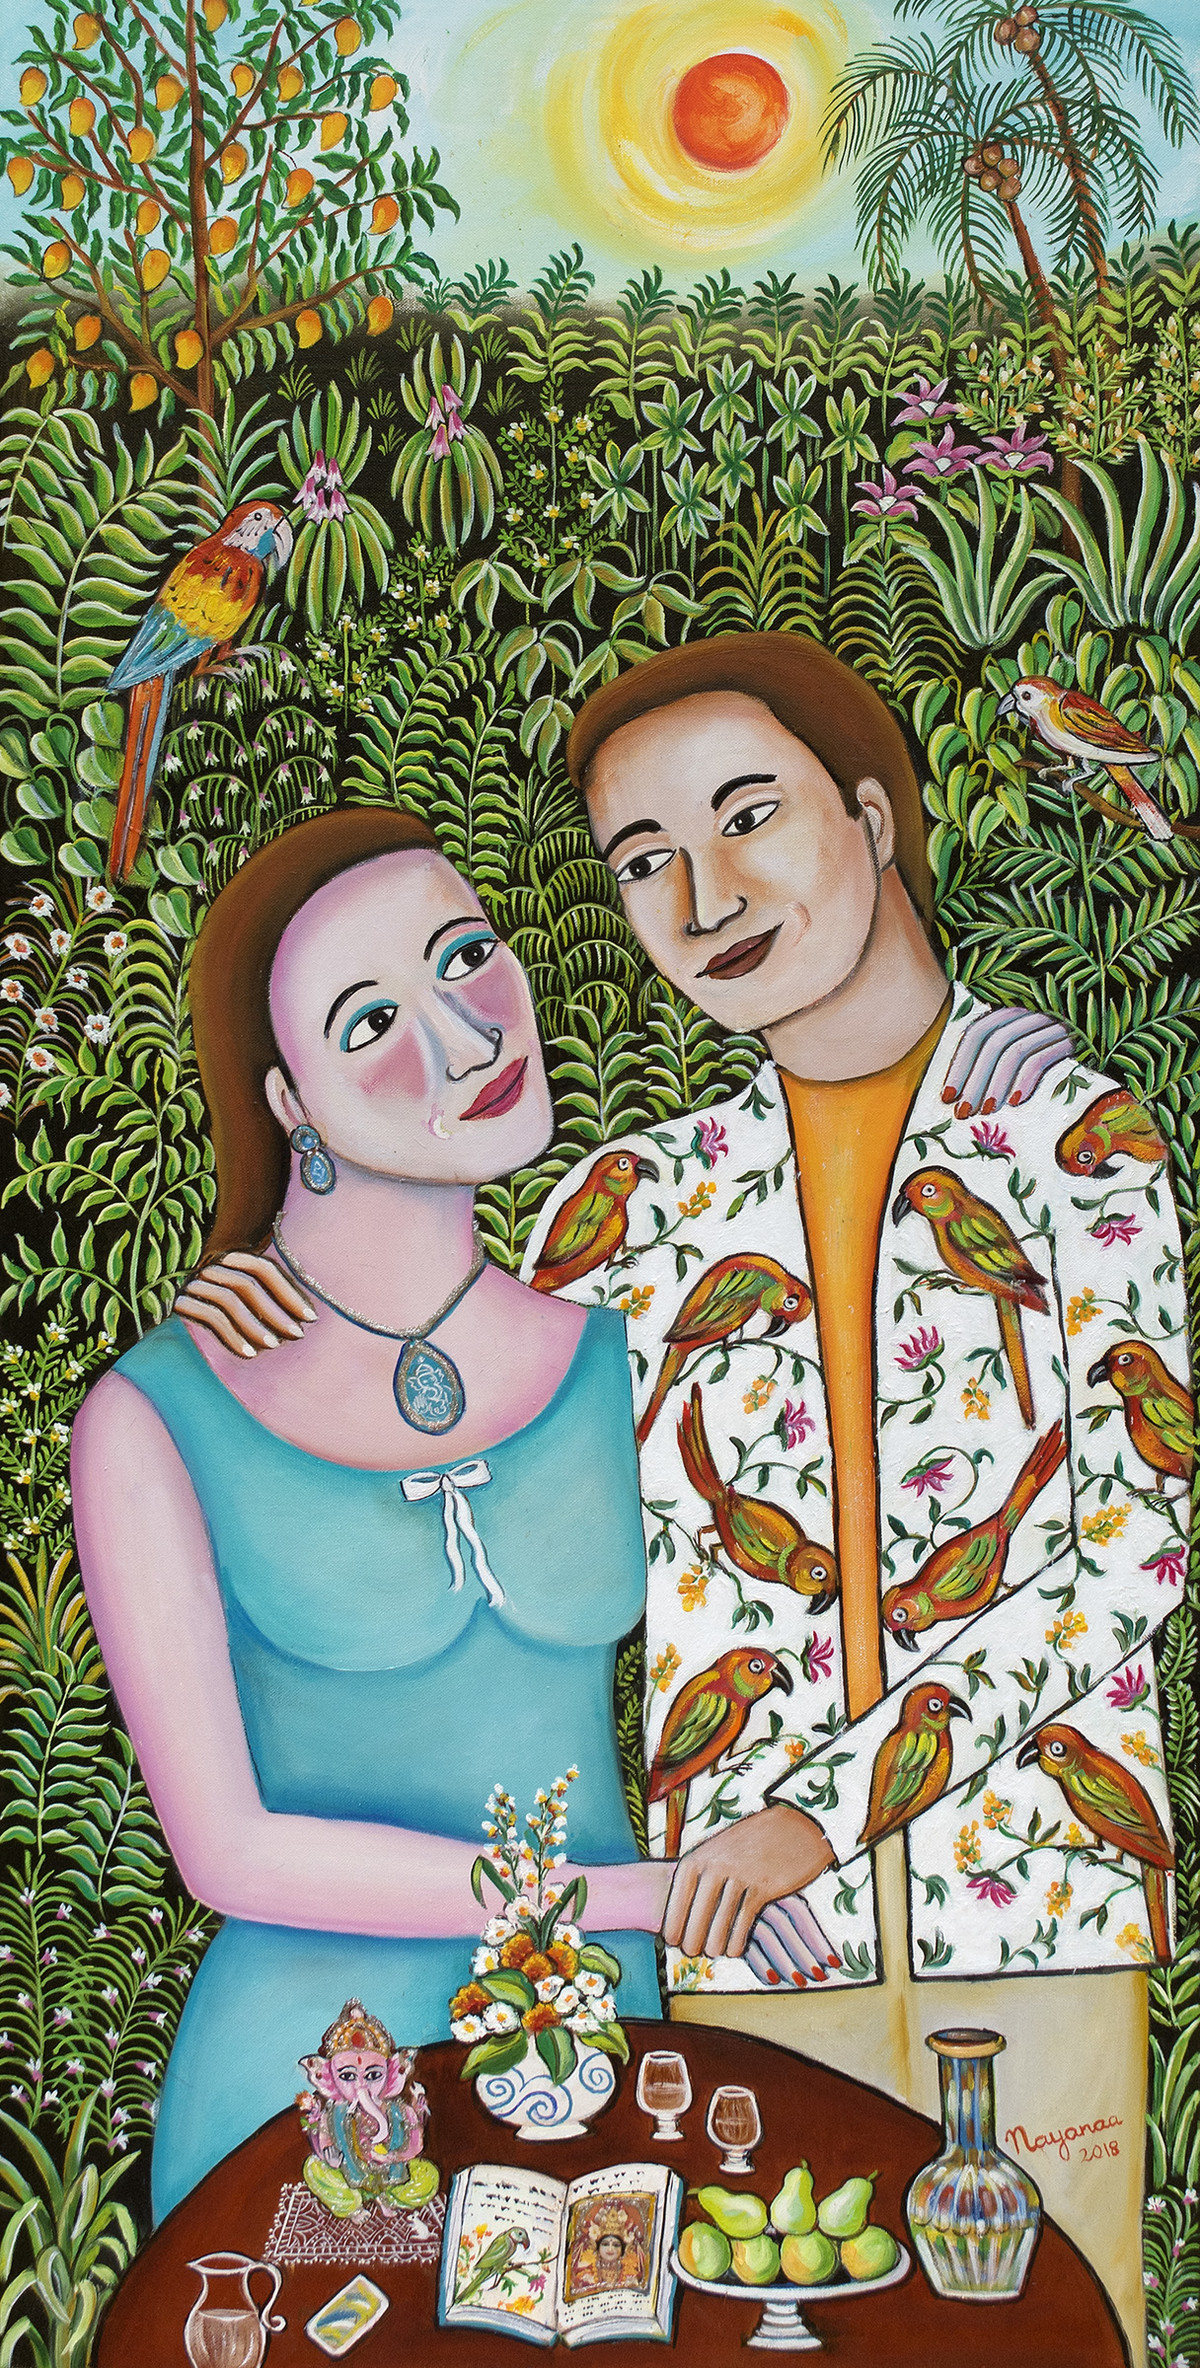 Living our Dreams by Nayanaa Kanodia, Naive Painting, Oil on Canvas, Green color